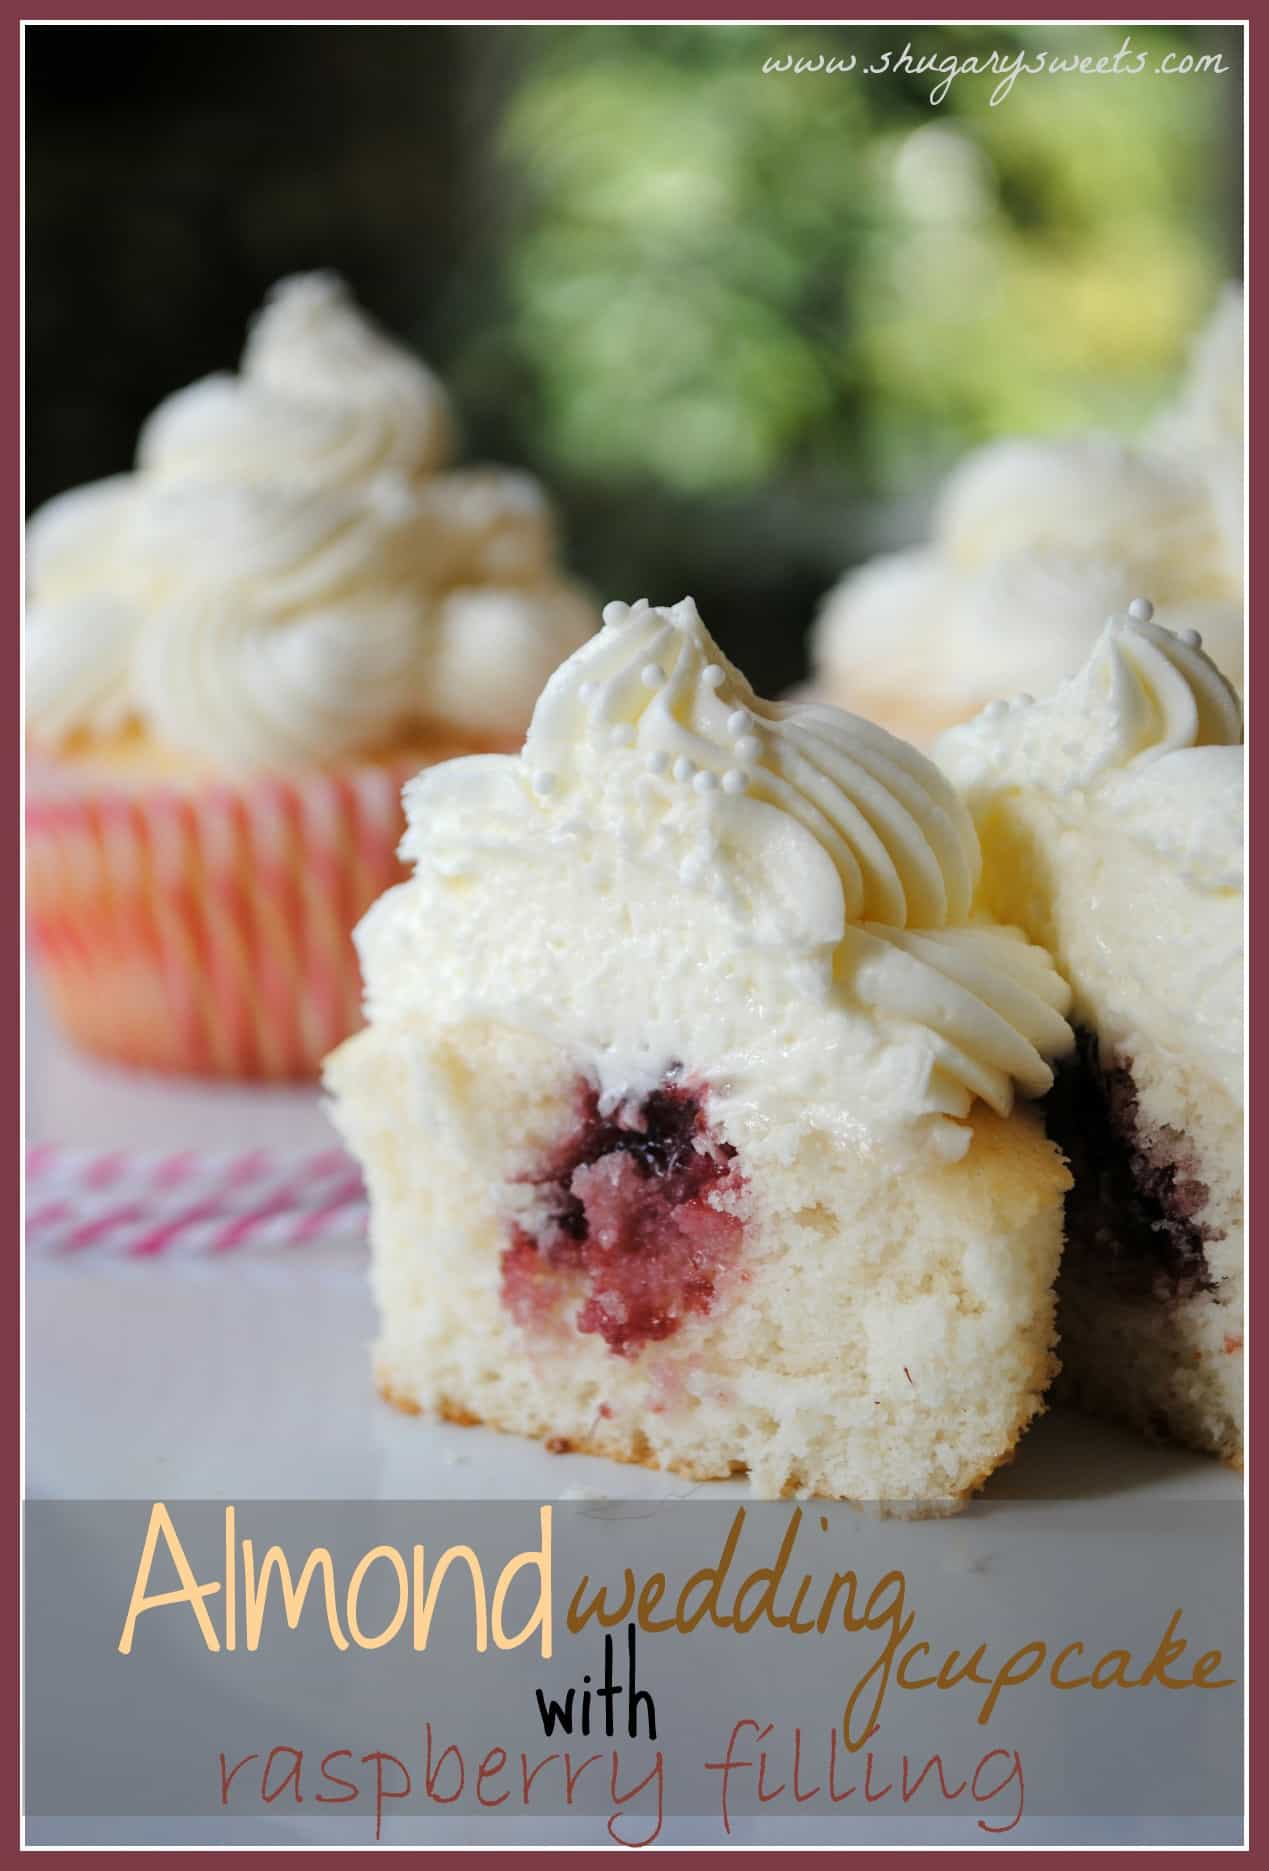 almond wedding cake cupcakes with raspberry filling. Black Bedroom Furniture Sets. Home Design Ideas